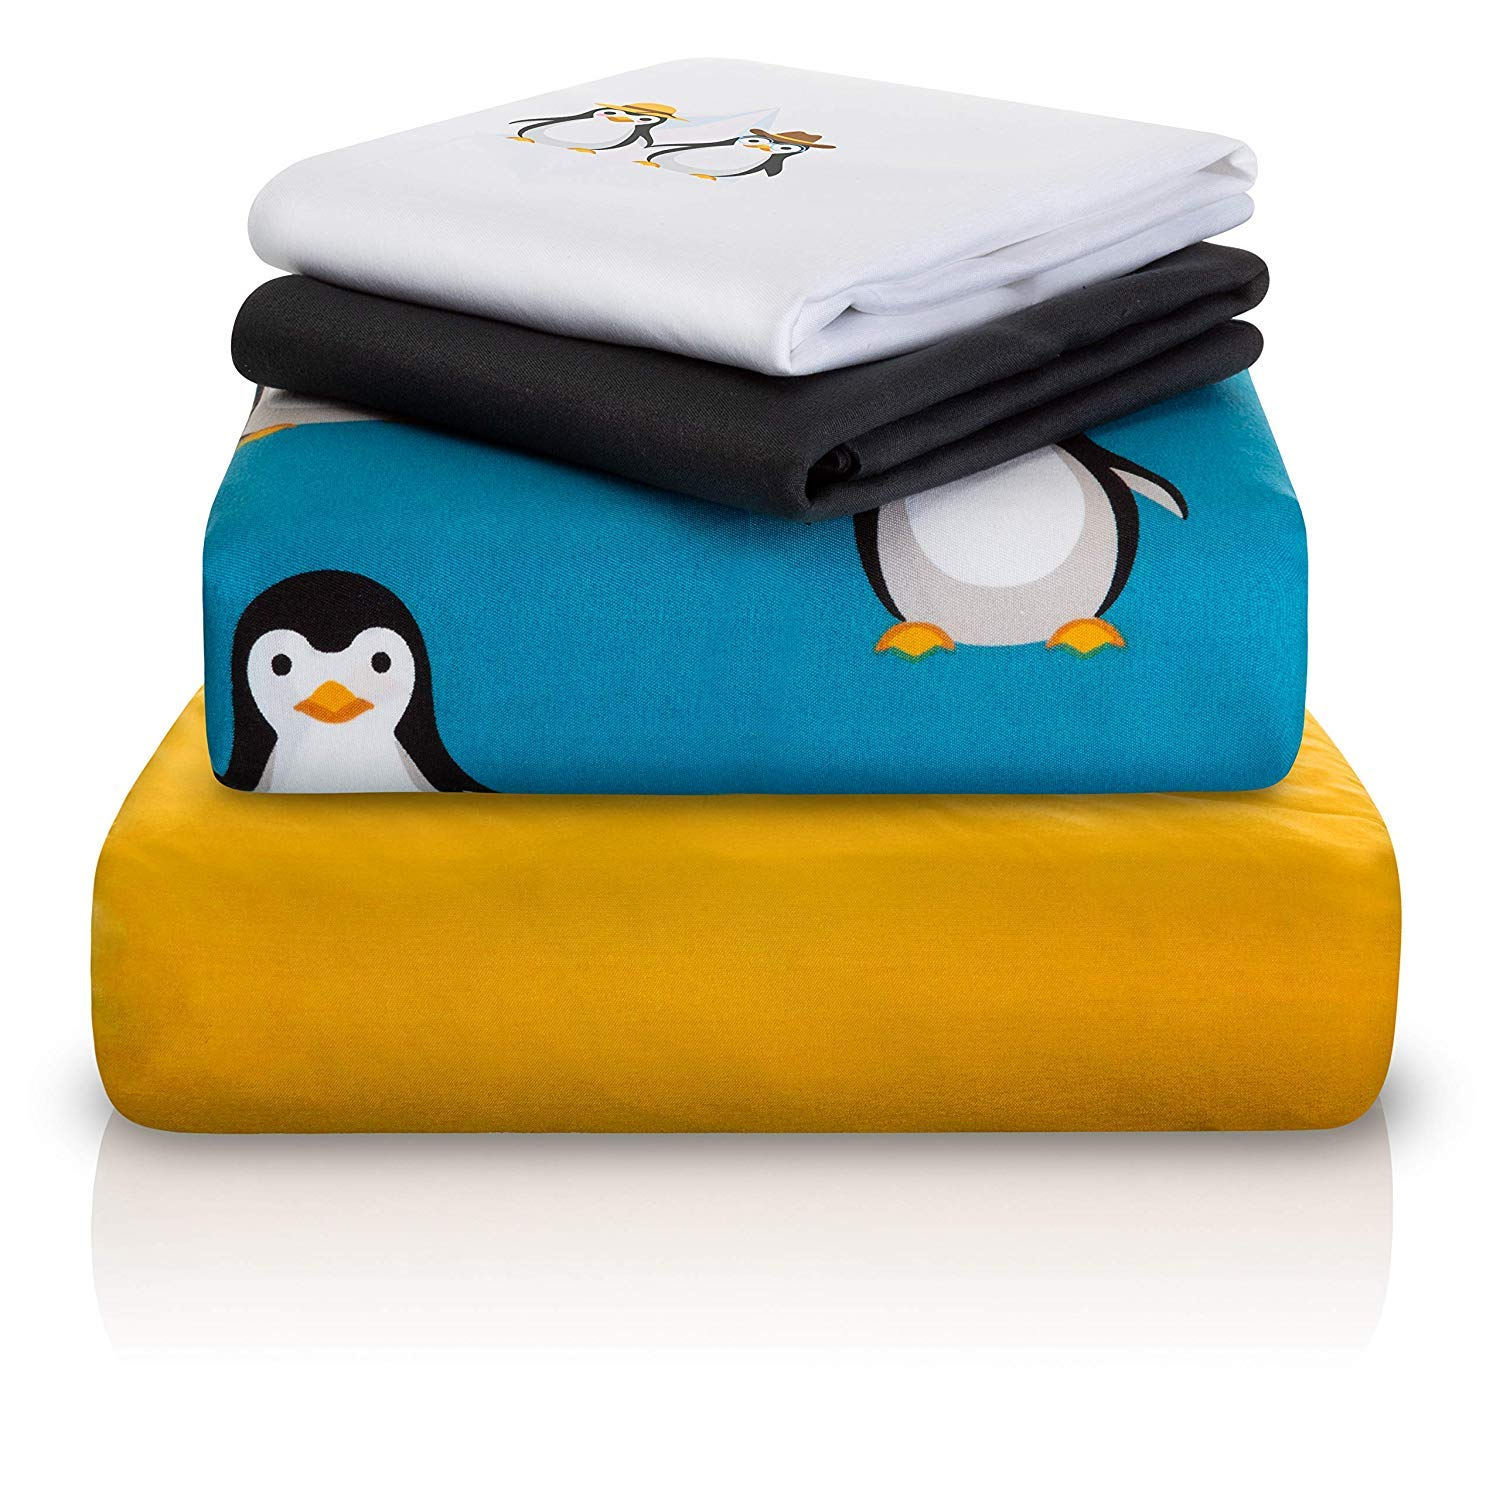 "Chital Full Bed Sheet Set | 4 Pc Penguin Themed Kids Bedding Set | Arctic Animal Collection | Durable Super-Soft, Double-Brushed Microfiber | 1 Flat, 1 Fitted Sheet & 2 Pillow Cases | 15"" Deep"